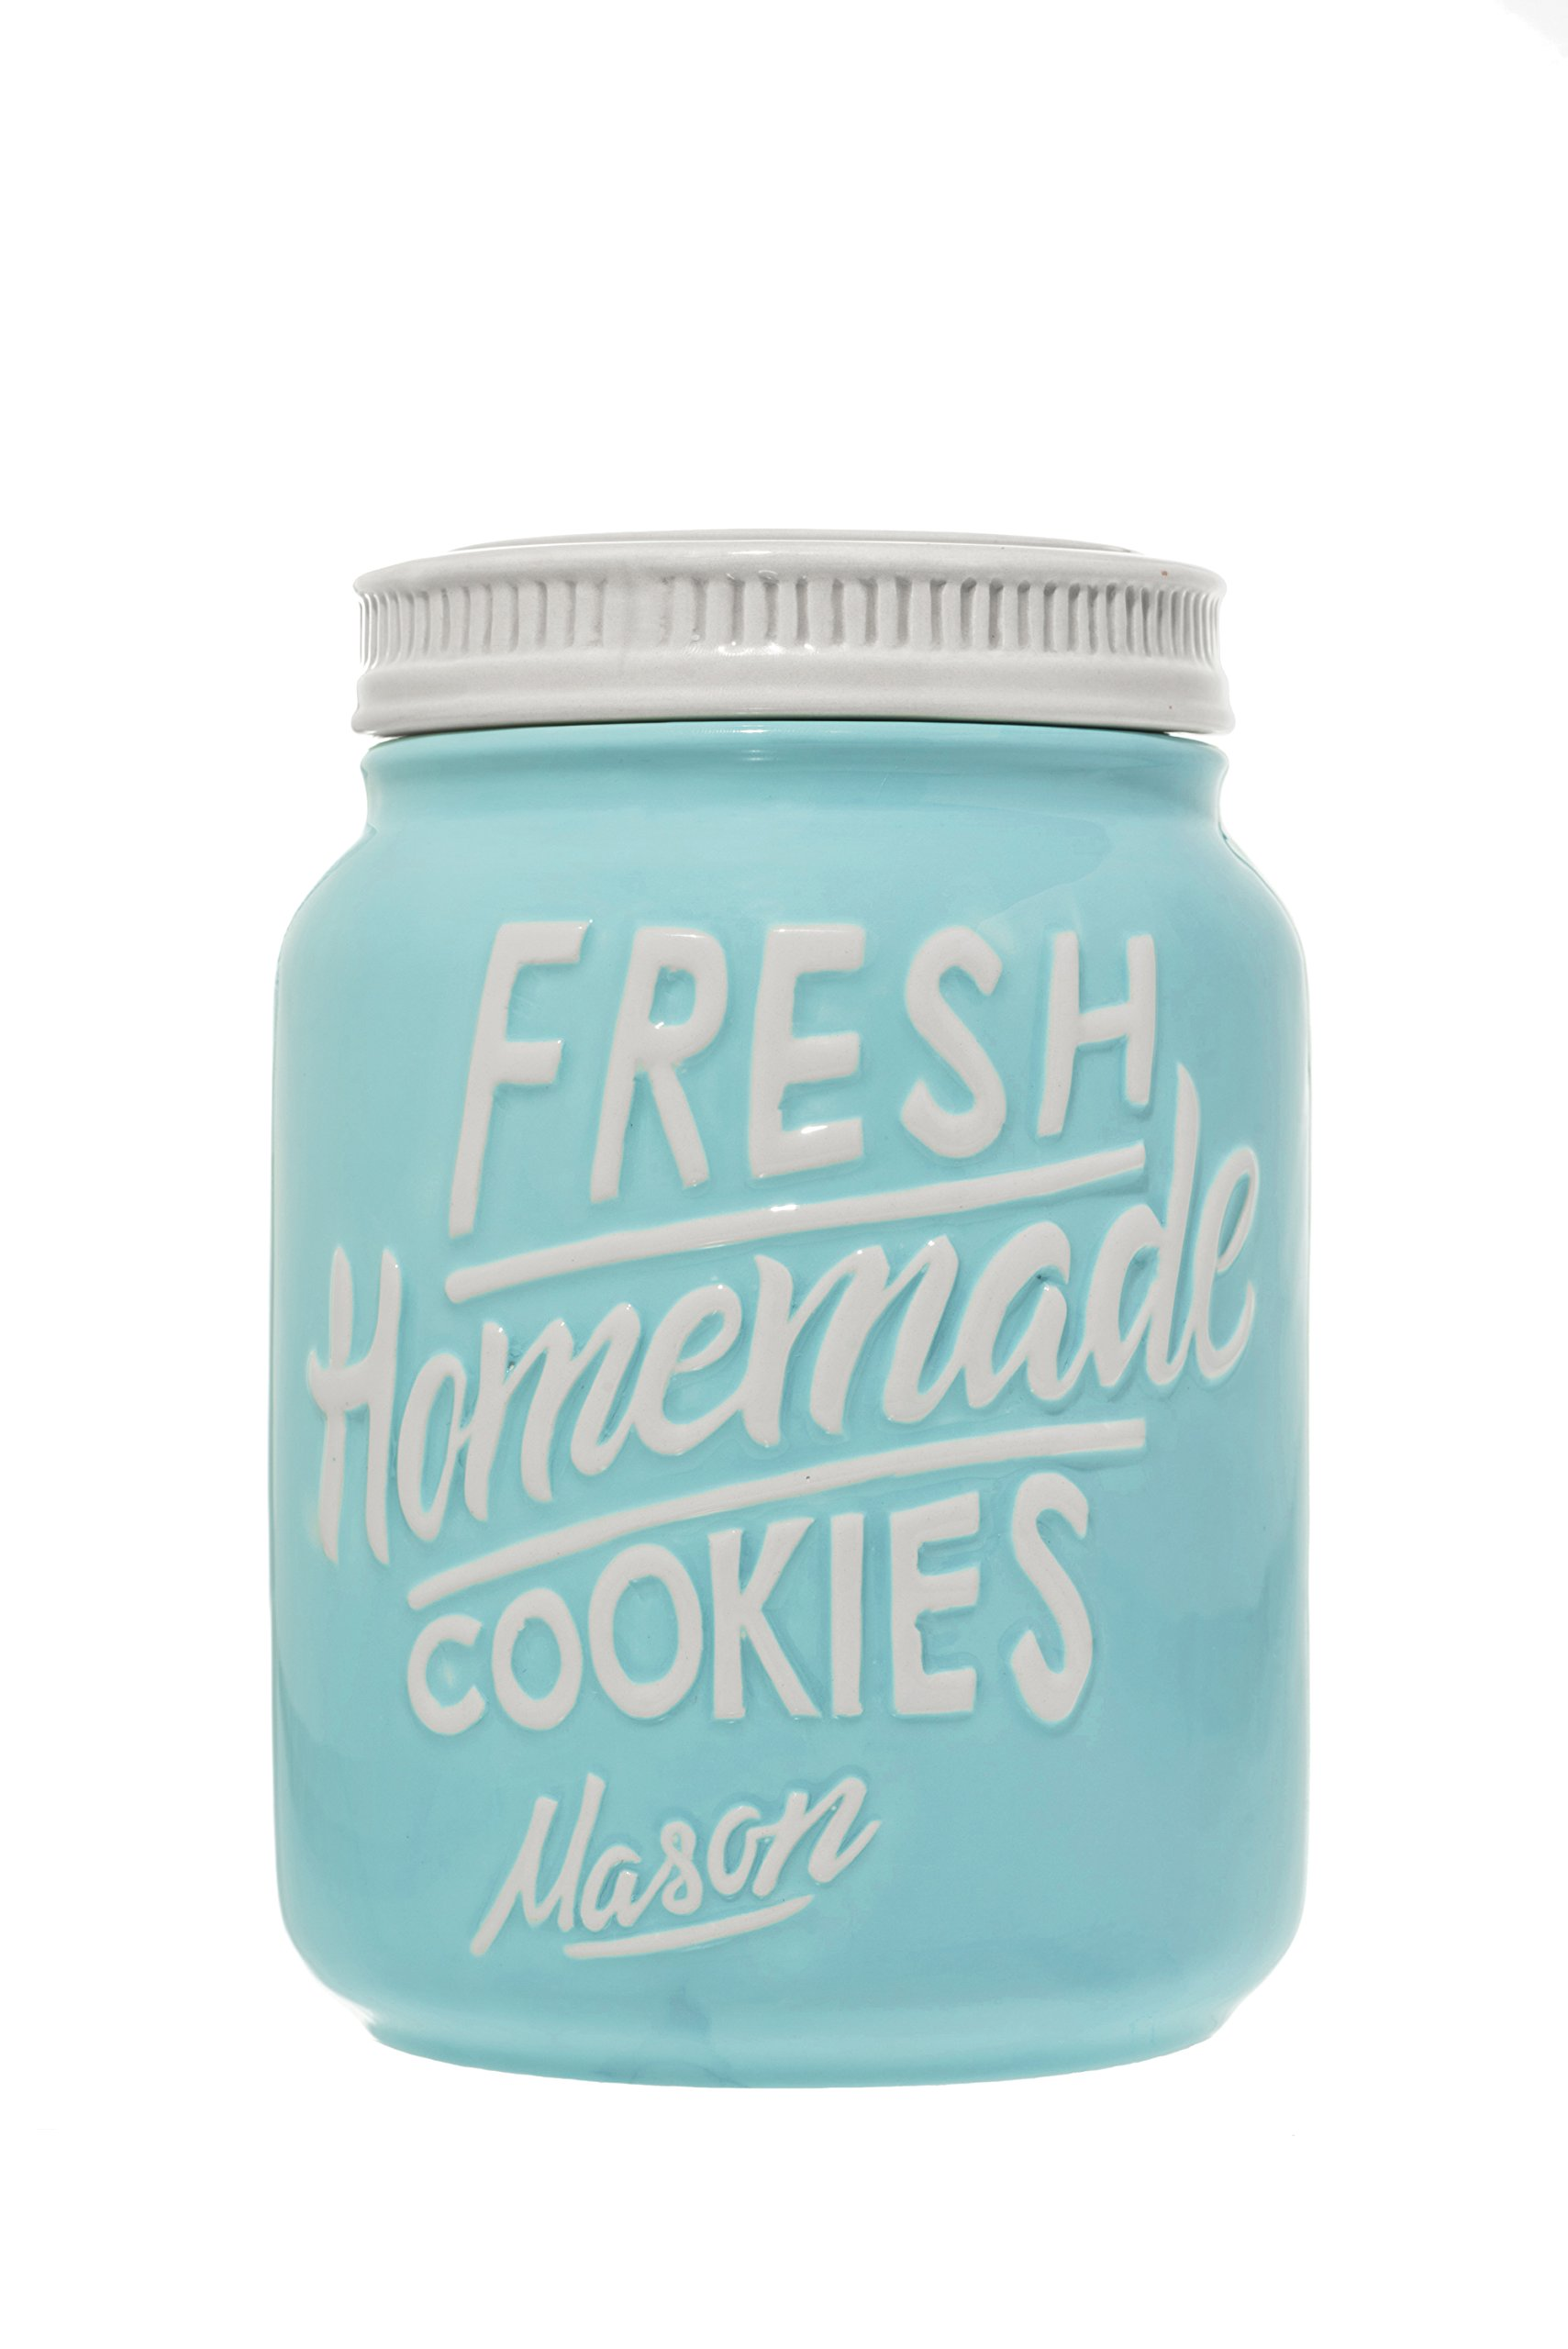 Ceramic Mason Jars Cookie Jar - Keep Your Cookies & Baked Goods Fresh with an Airtight Lid | Handy Container | Vintage Farmhouse Decor & Collector Gift | Rustic Kitchen Accessory by Goodscious (Blue)